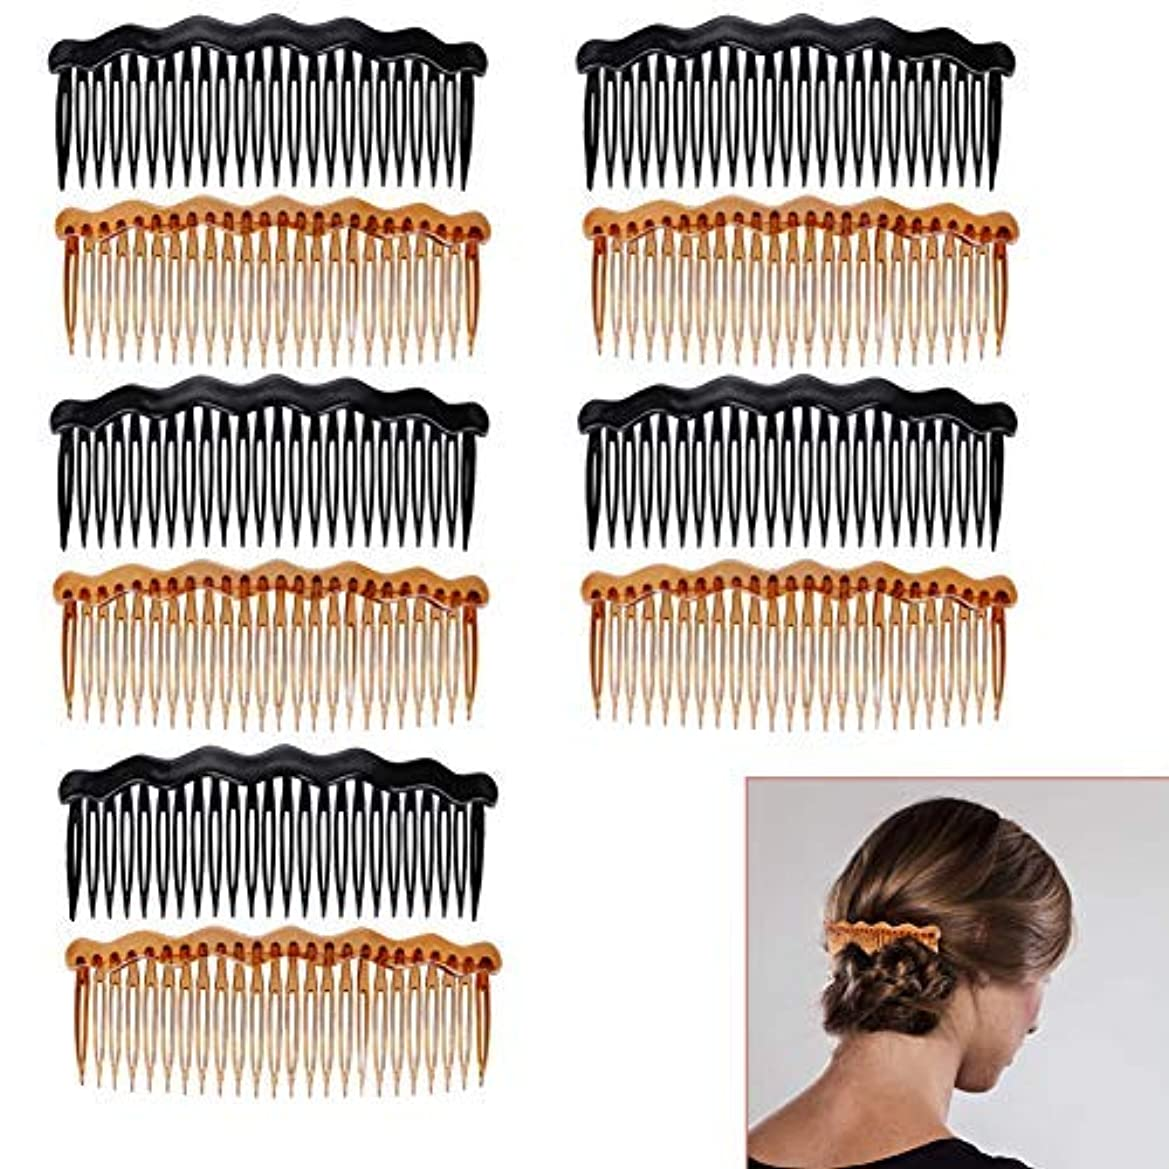 Luckycivia 10Pcs Plastic French Twist Comb, Side Hair Combs with 24 Teeth Hair Comb for Fine Hair,Hair Combs Accessories...